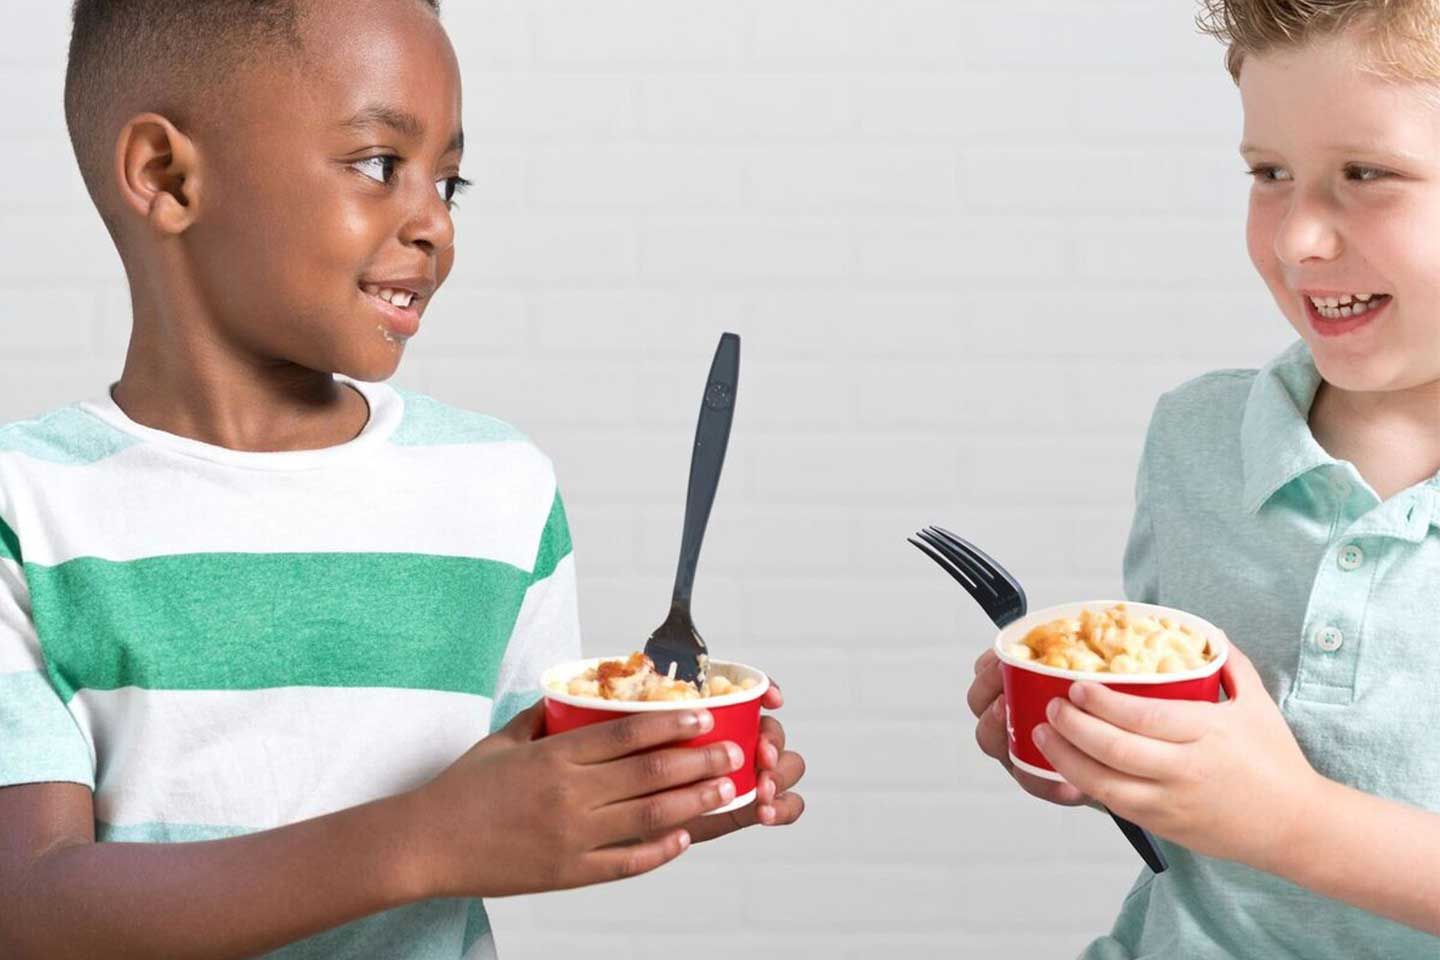 boys eating from chick-fil-a sustainable bowls